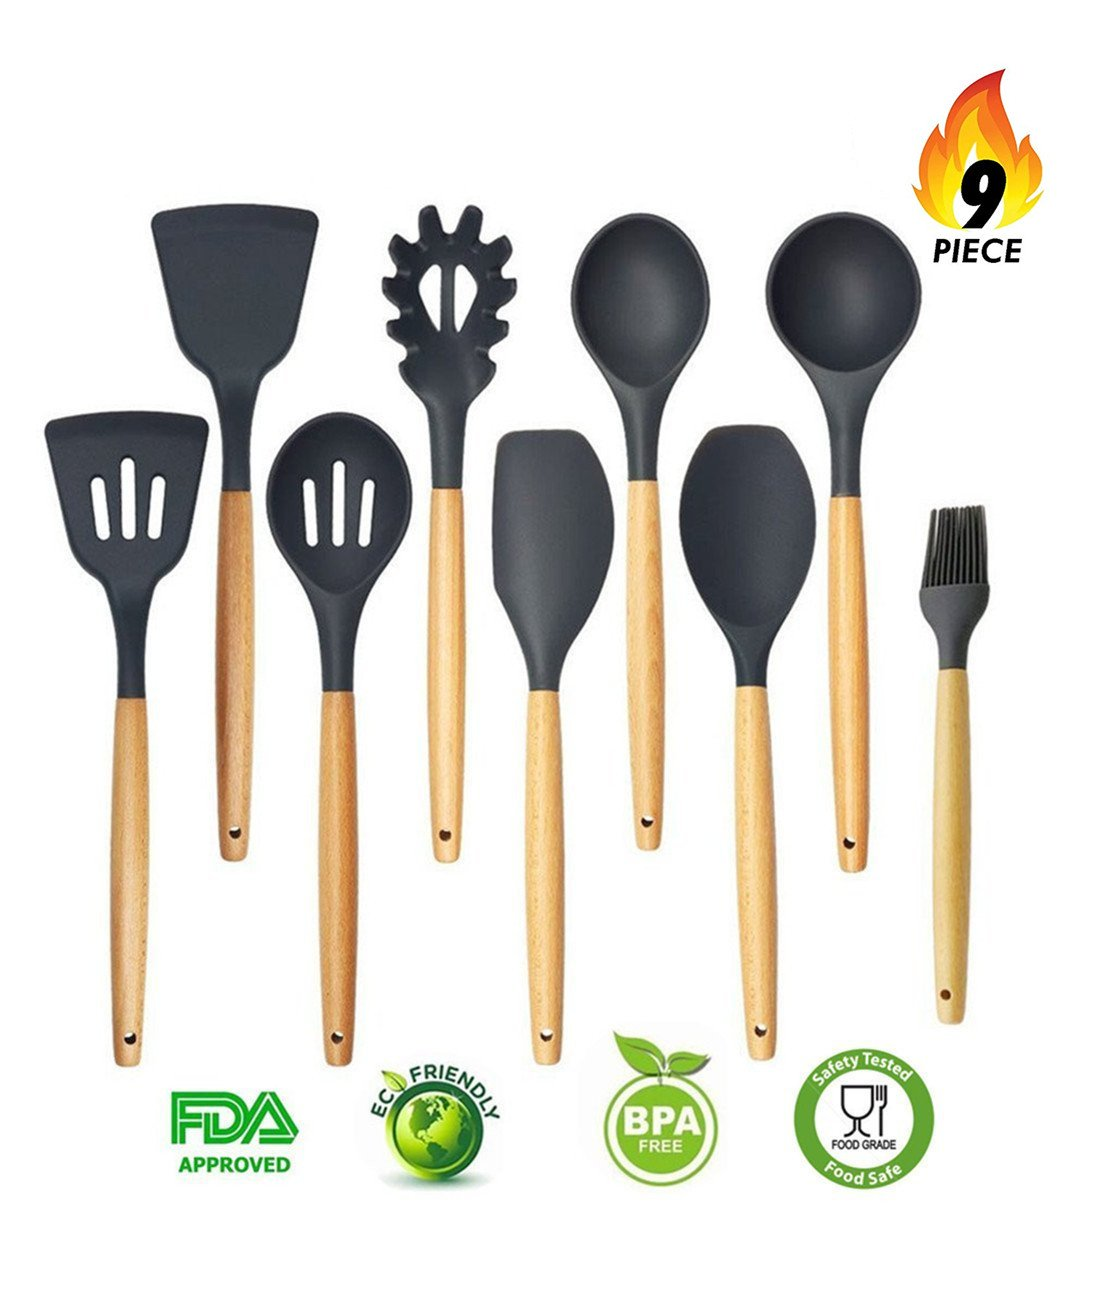 Silicone Kitchen Utensils 9-Piece Cooking Utensils Set with Wood Handles for Nonstick Cookware, Eco-Friendly, BPA Free, Non-StickSilicone Cooking Utensils Set